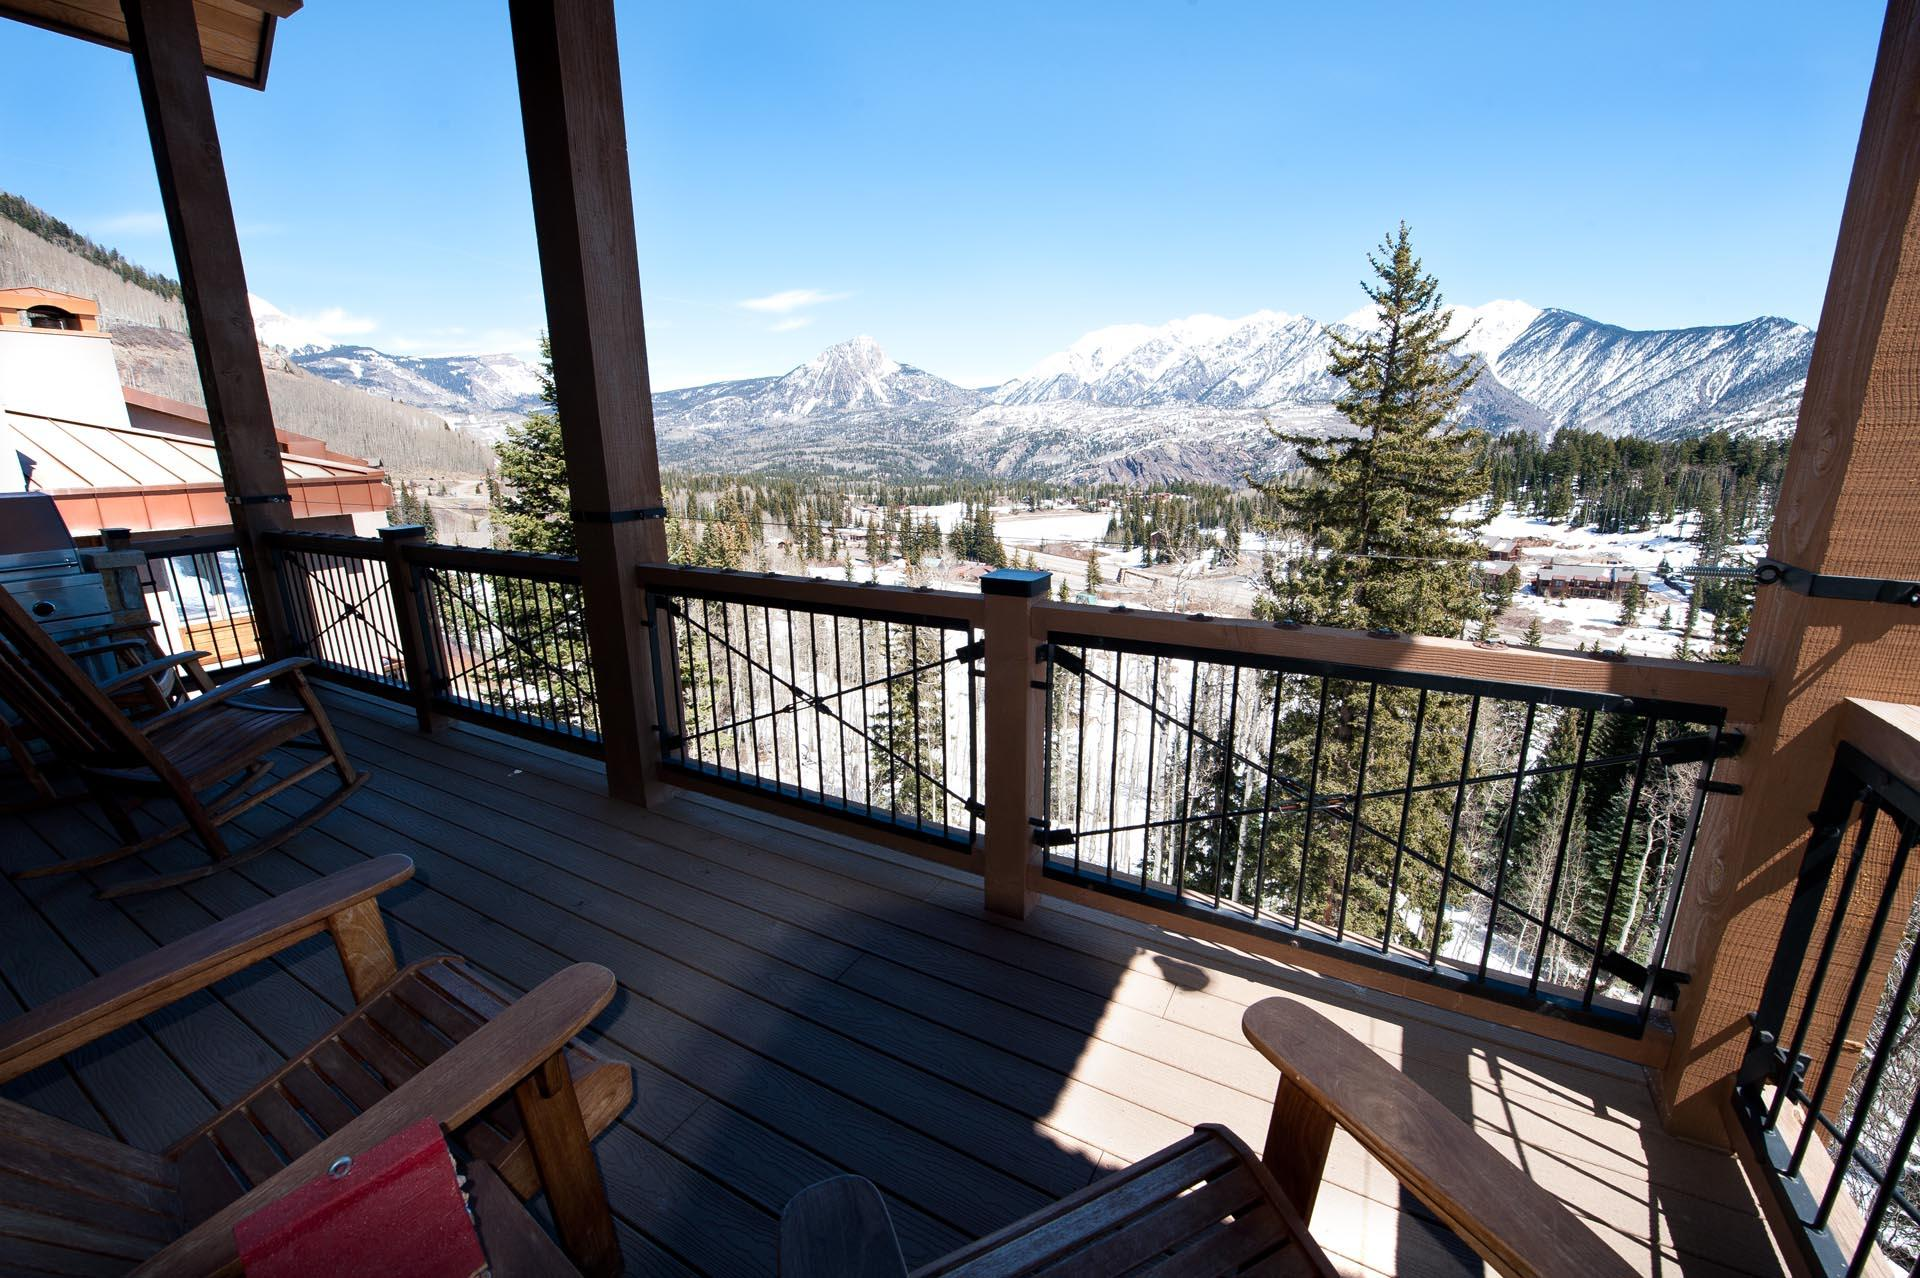 Outdoor patio with amazing mountain views and bbq grill